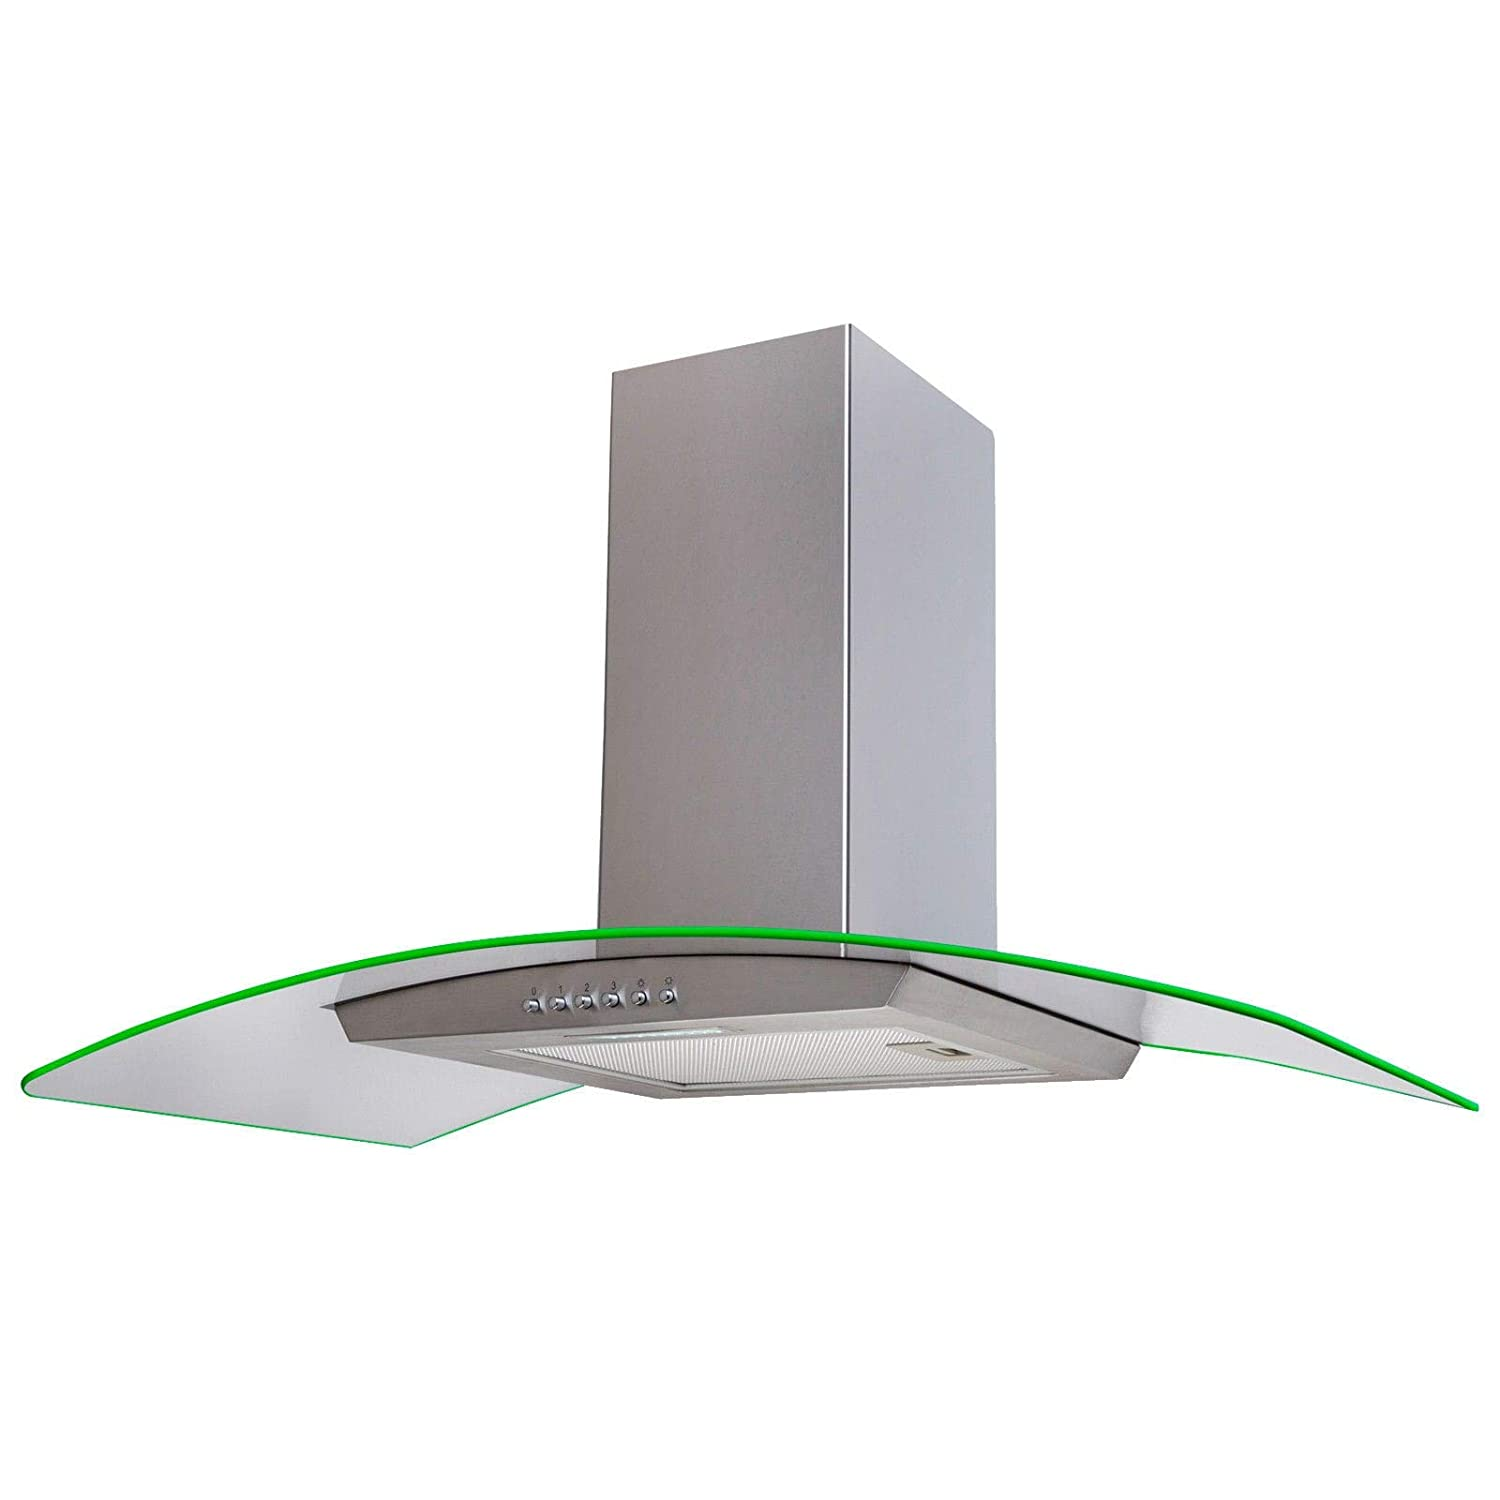 Curved cooker hood 90cm truck swing case